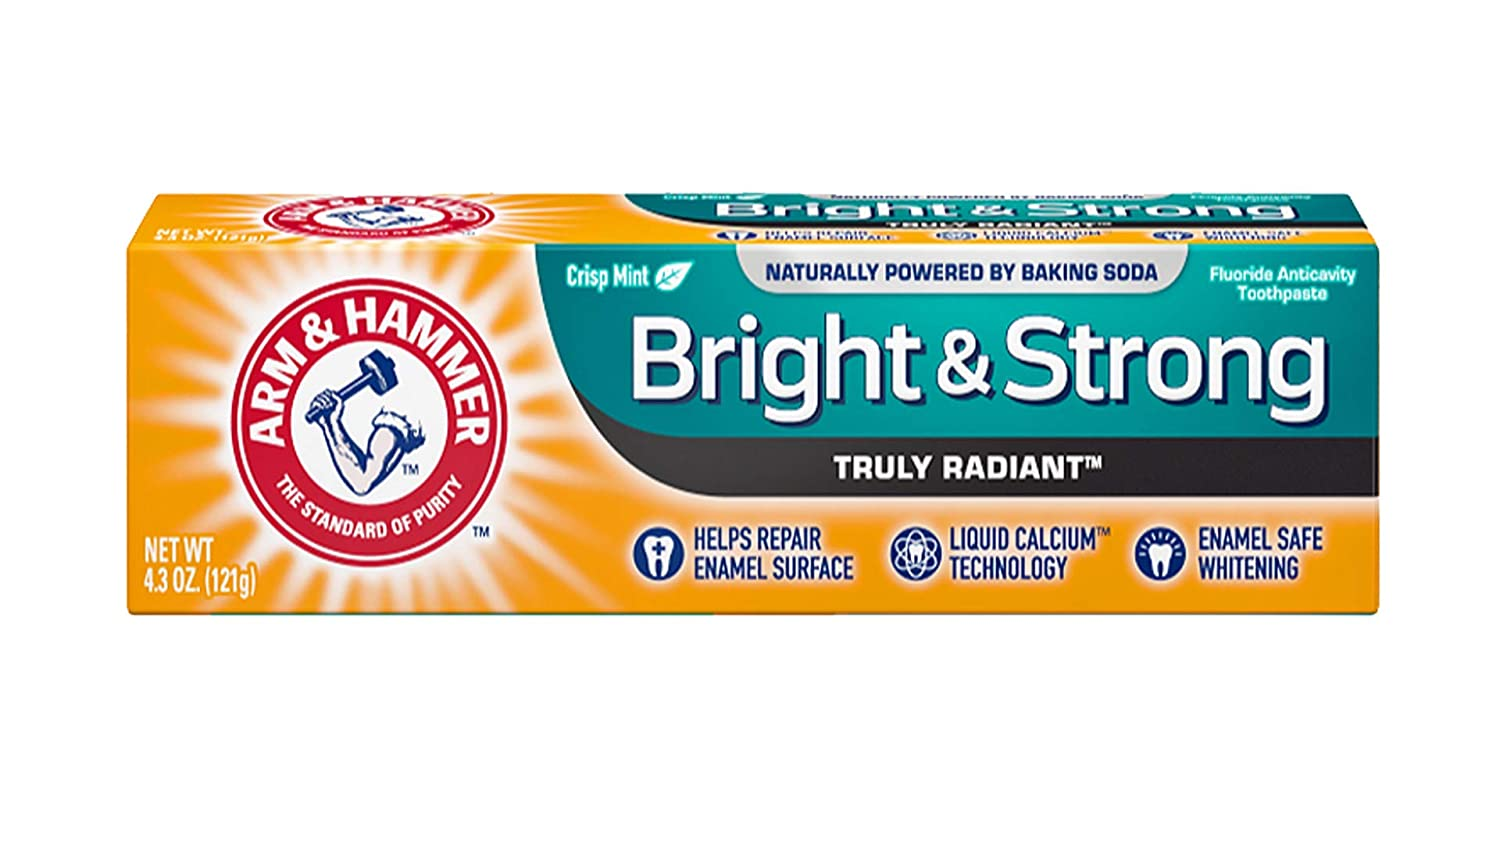 ARM & HAMMER Truly Radiant Bright & Strong Fluoride Anticavity Toothpaste Fresh Mint 4.3 oz